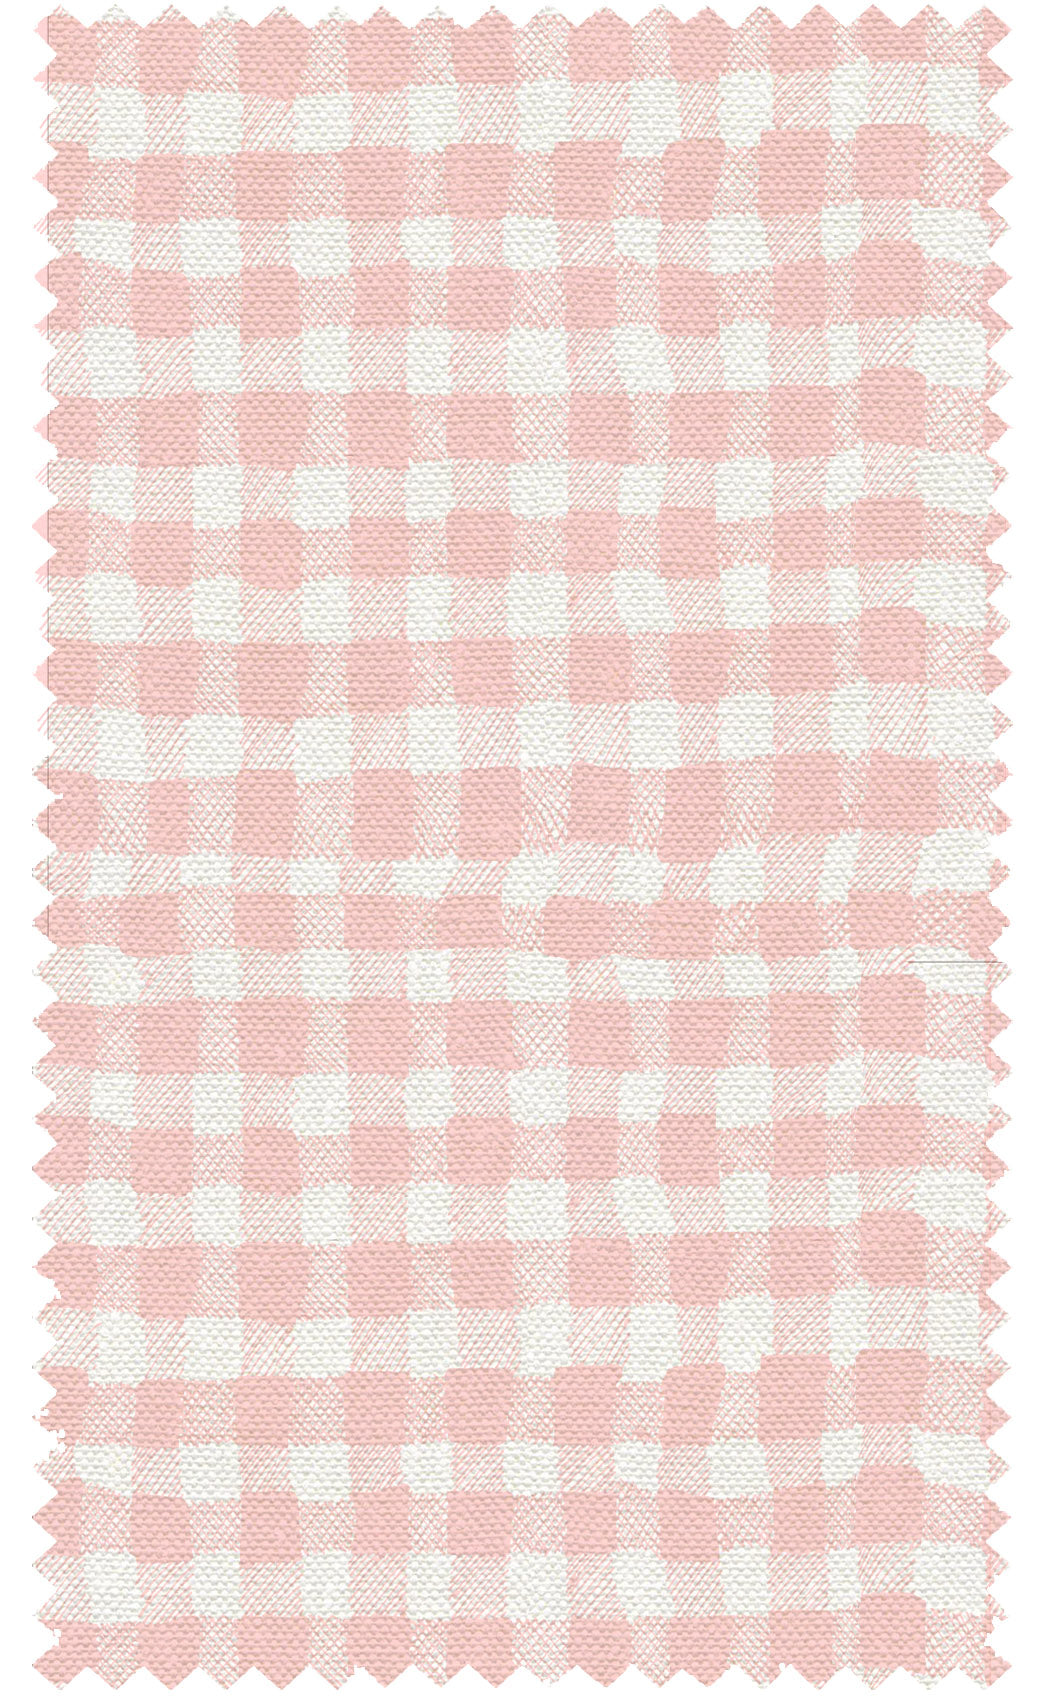 10 Holland Street Gingham Print Blush Pink cushion linen upholstery